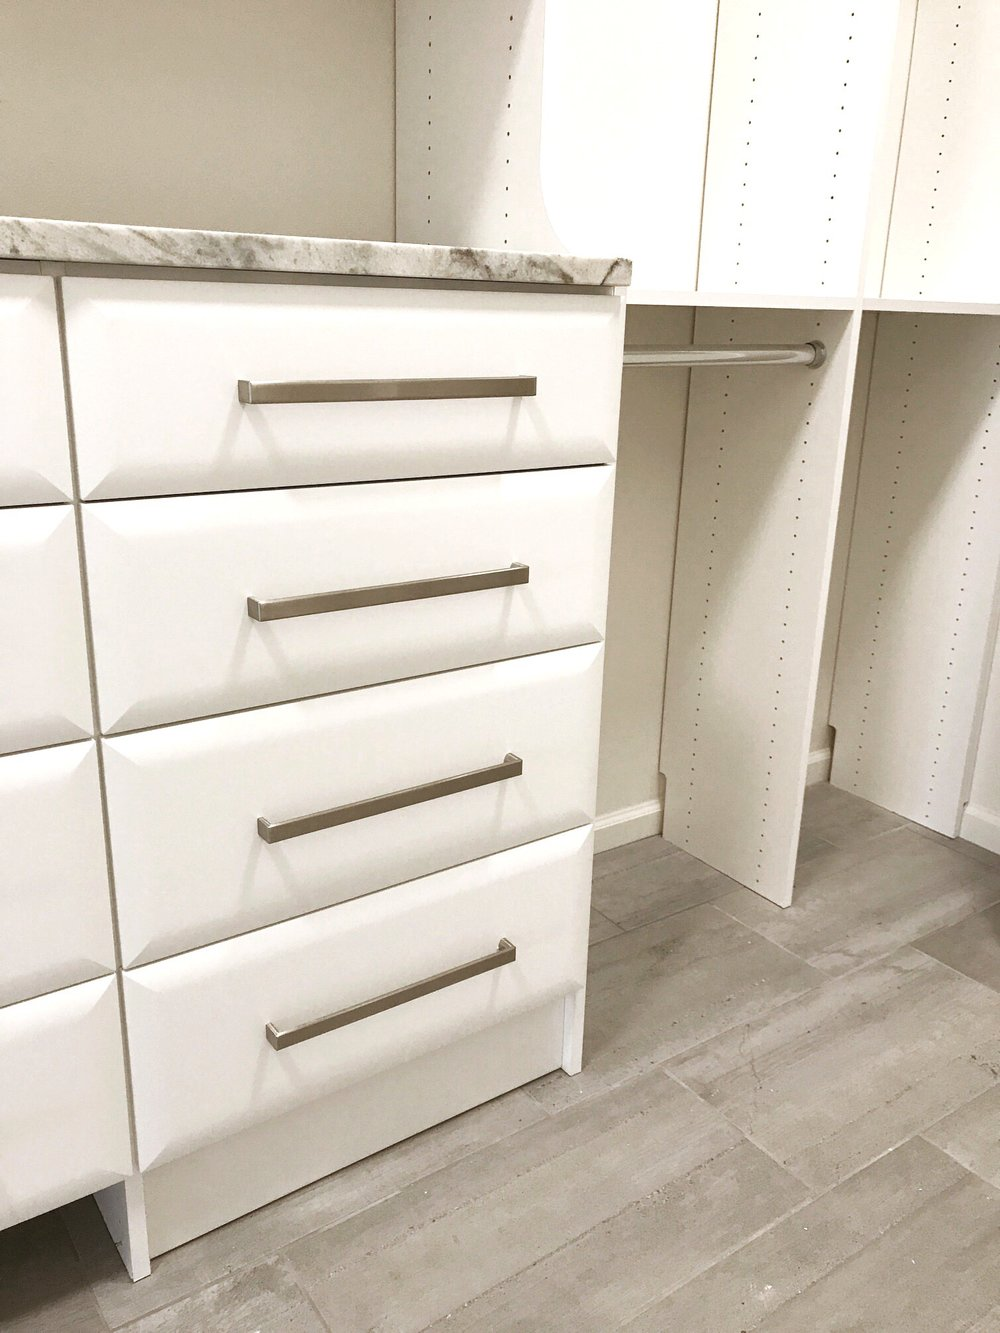 Chic pillow top drawer fronts and upgraded hardware add glamour in this custom closet by Closets of Tulsa.  Call now  for your FREE consultation and 3-D closet design:  918.609.0214